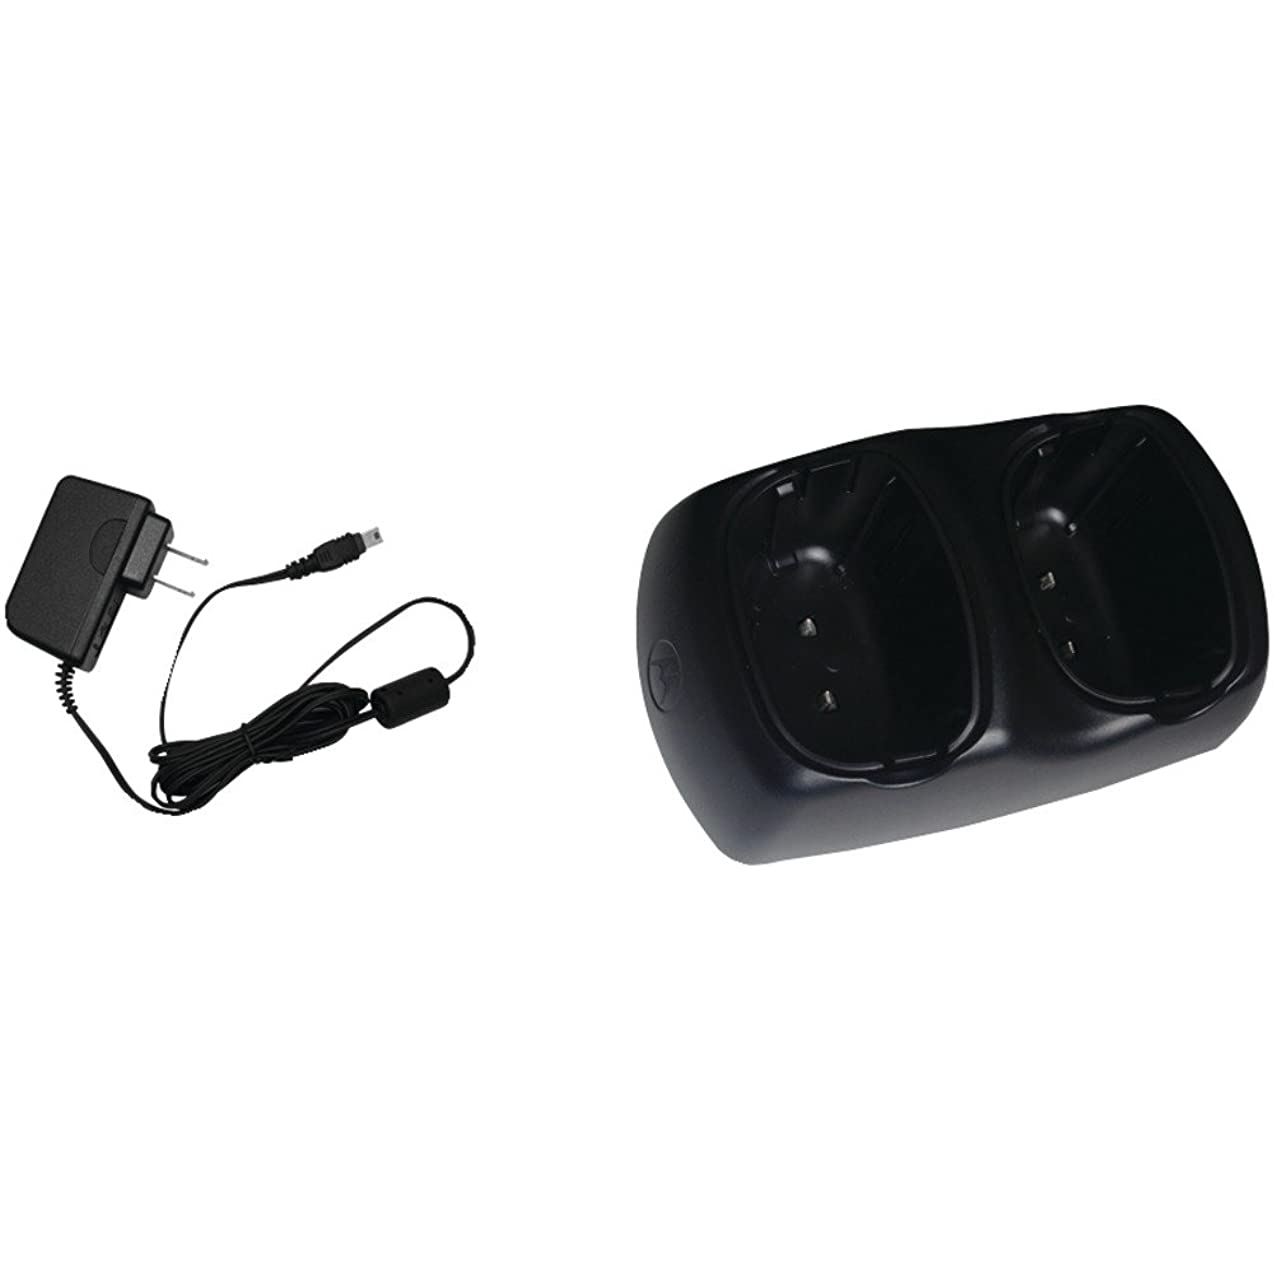 Motorola Talkabout Desktop Charger for MT and MU Series